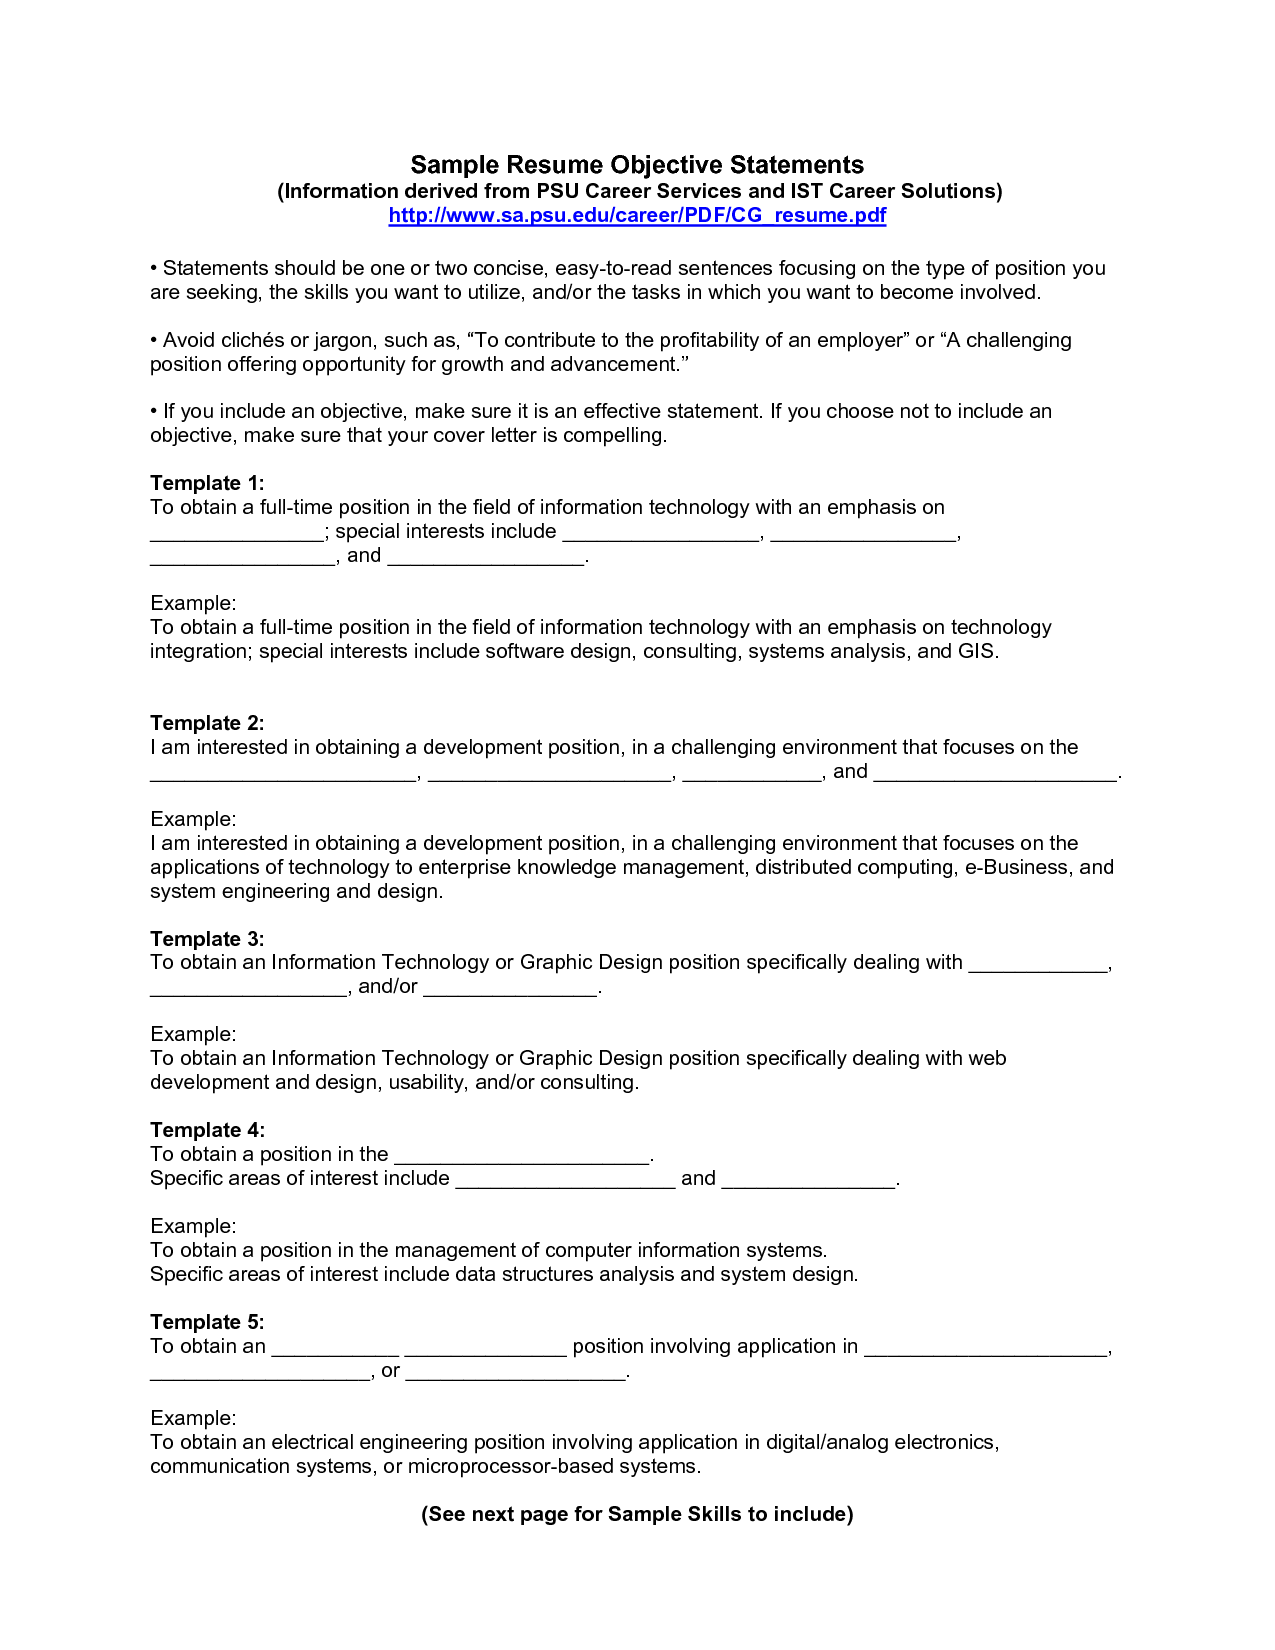 sample job objective resume - Objectives Resume Sample